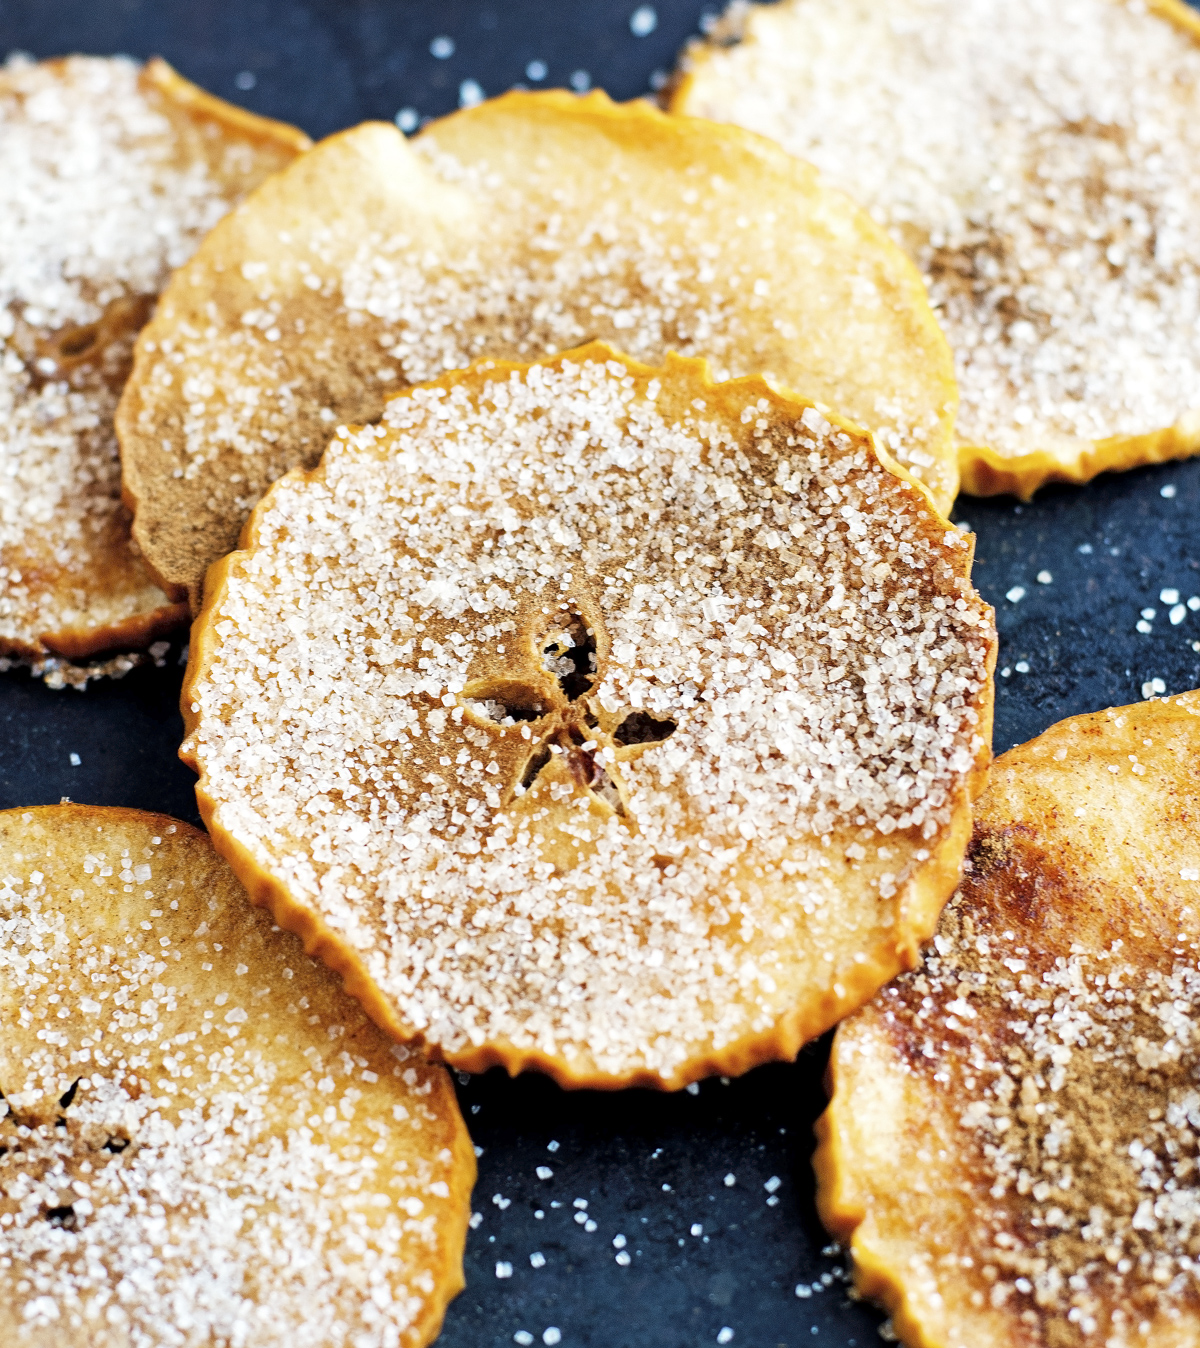 Baked Cinnamon Sugar Apple Chips